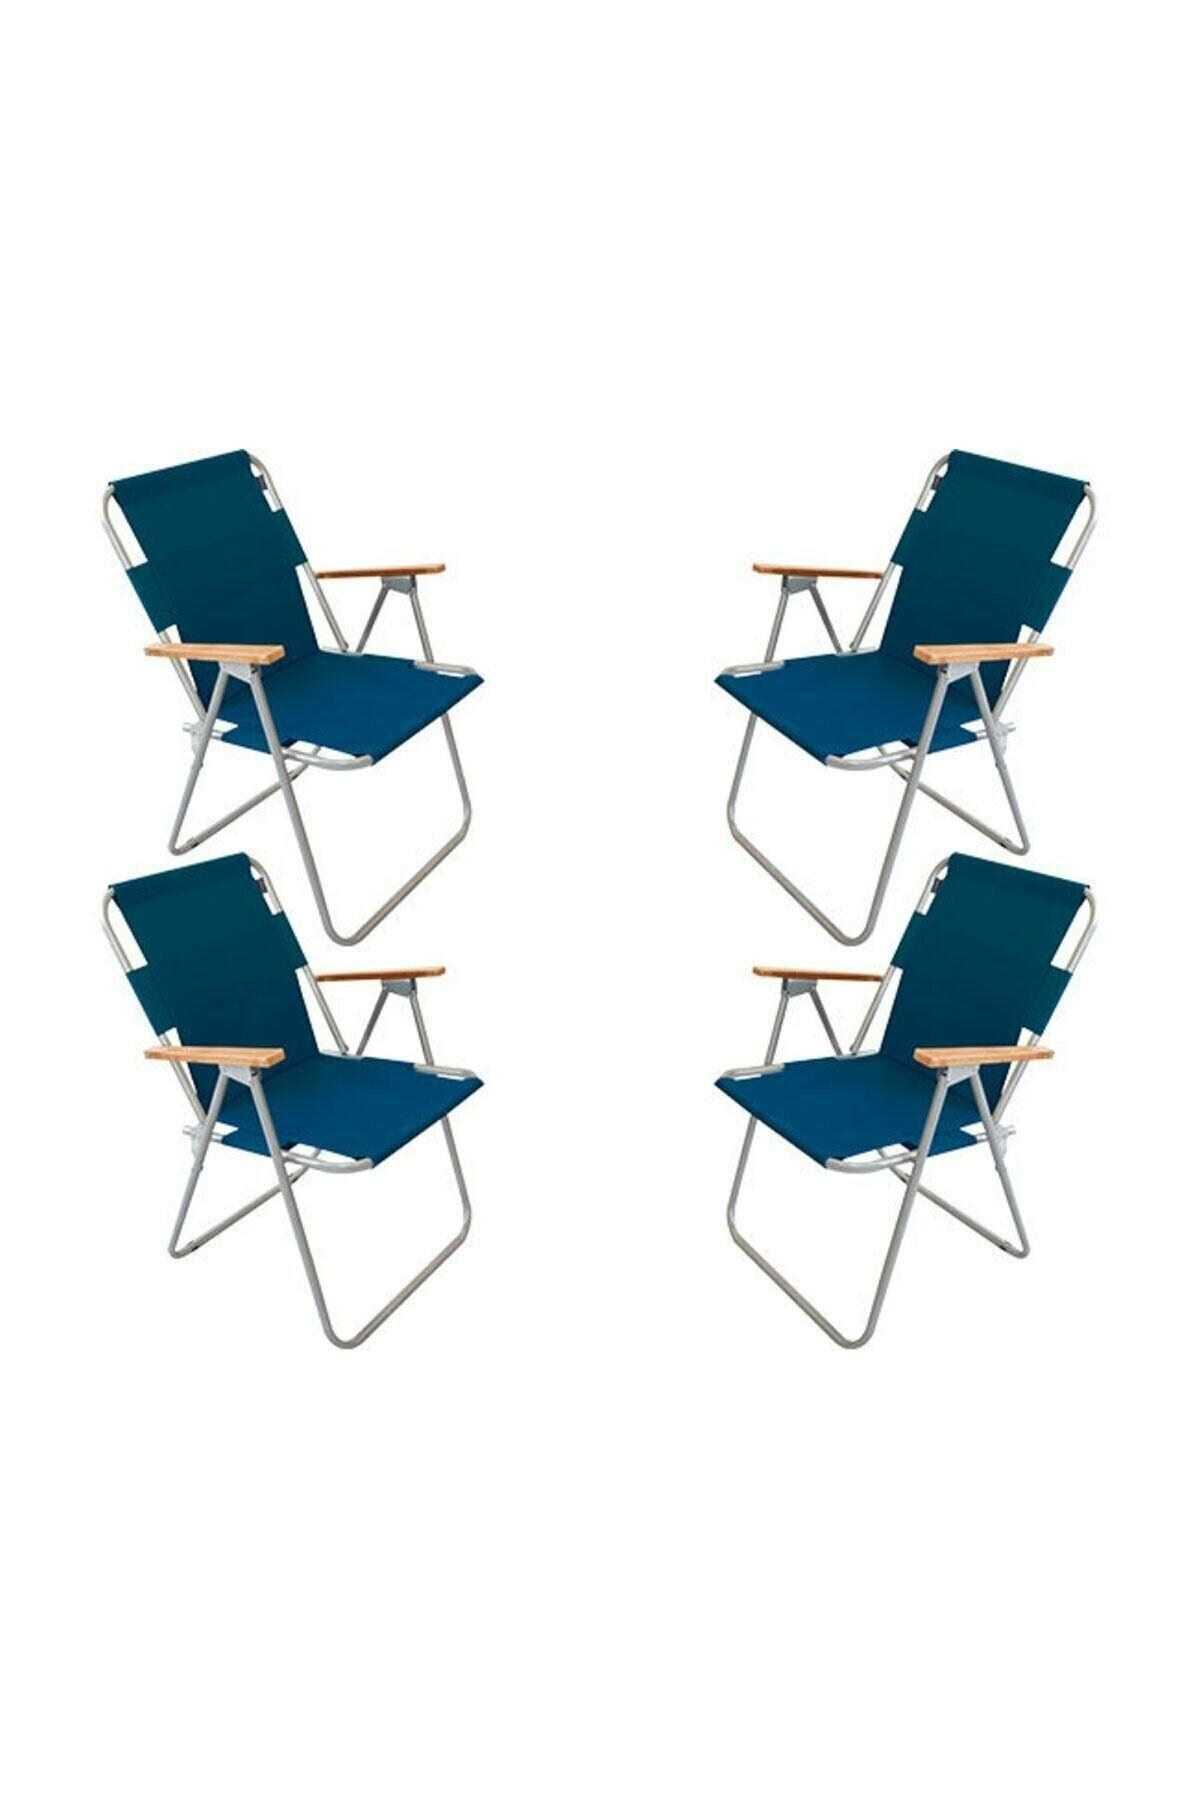 Bofigo 4 Pieces Folding Chair Camping Chair Balcony Chair Foldable Picnic and Garden Chair Blue